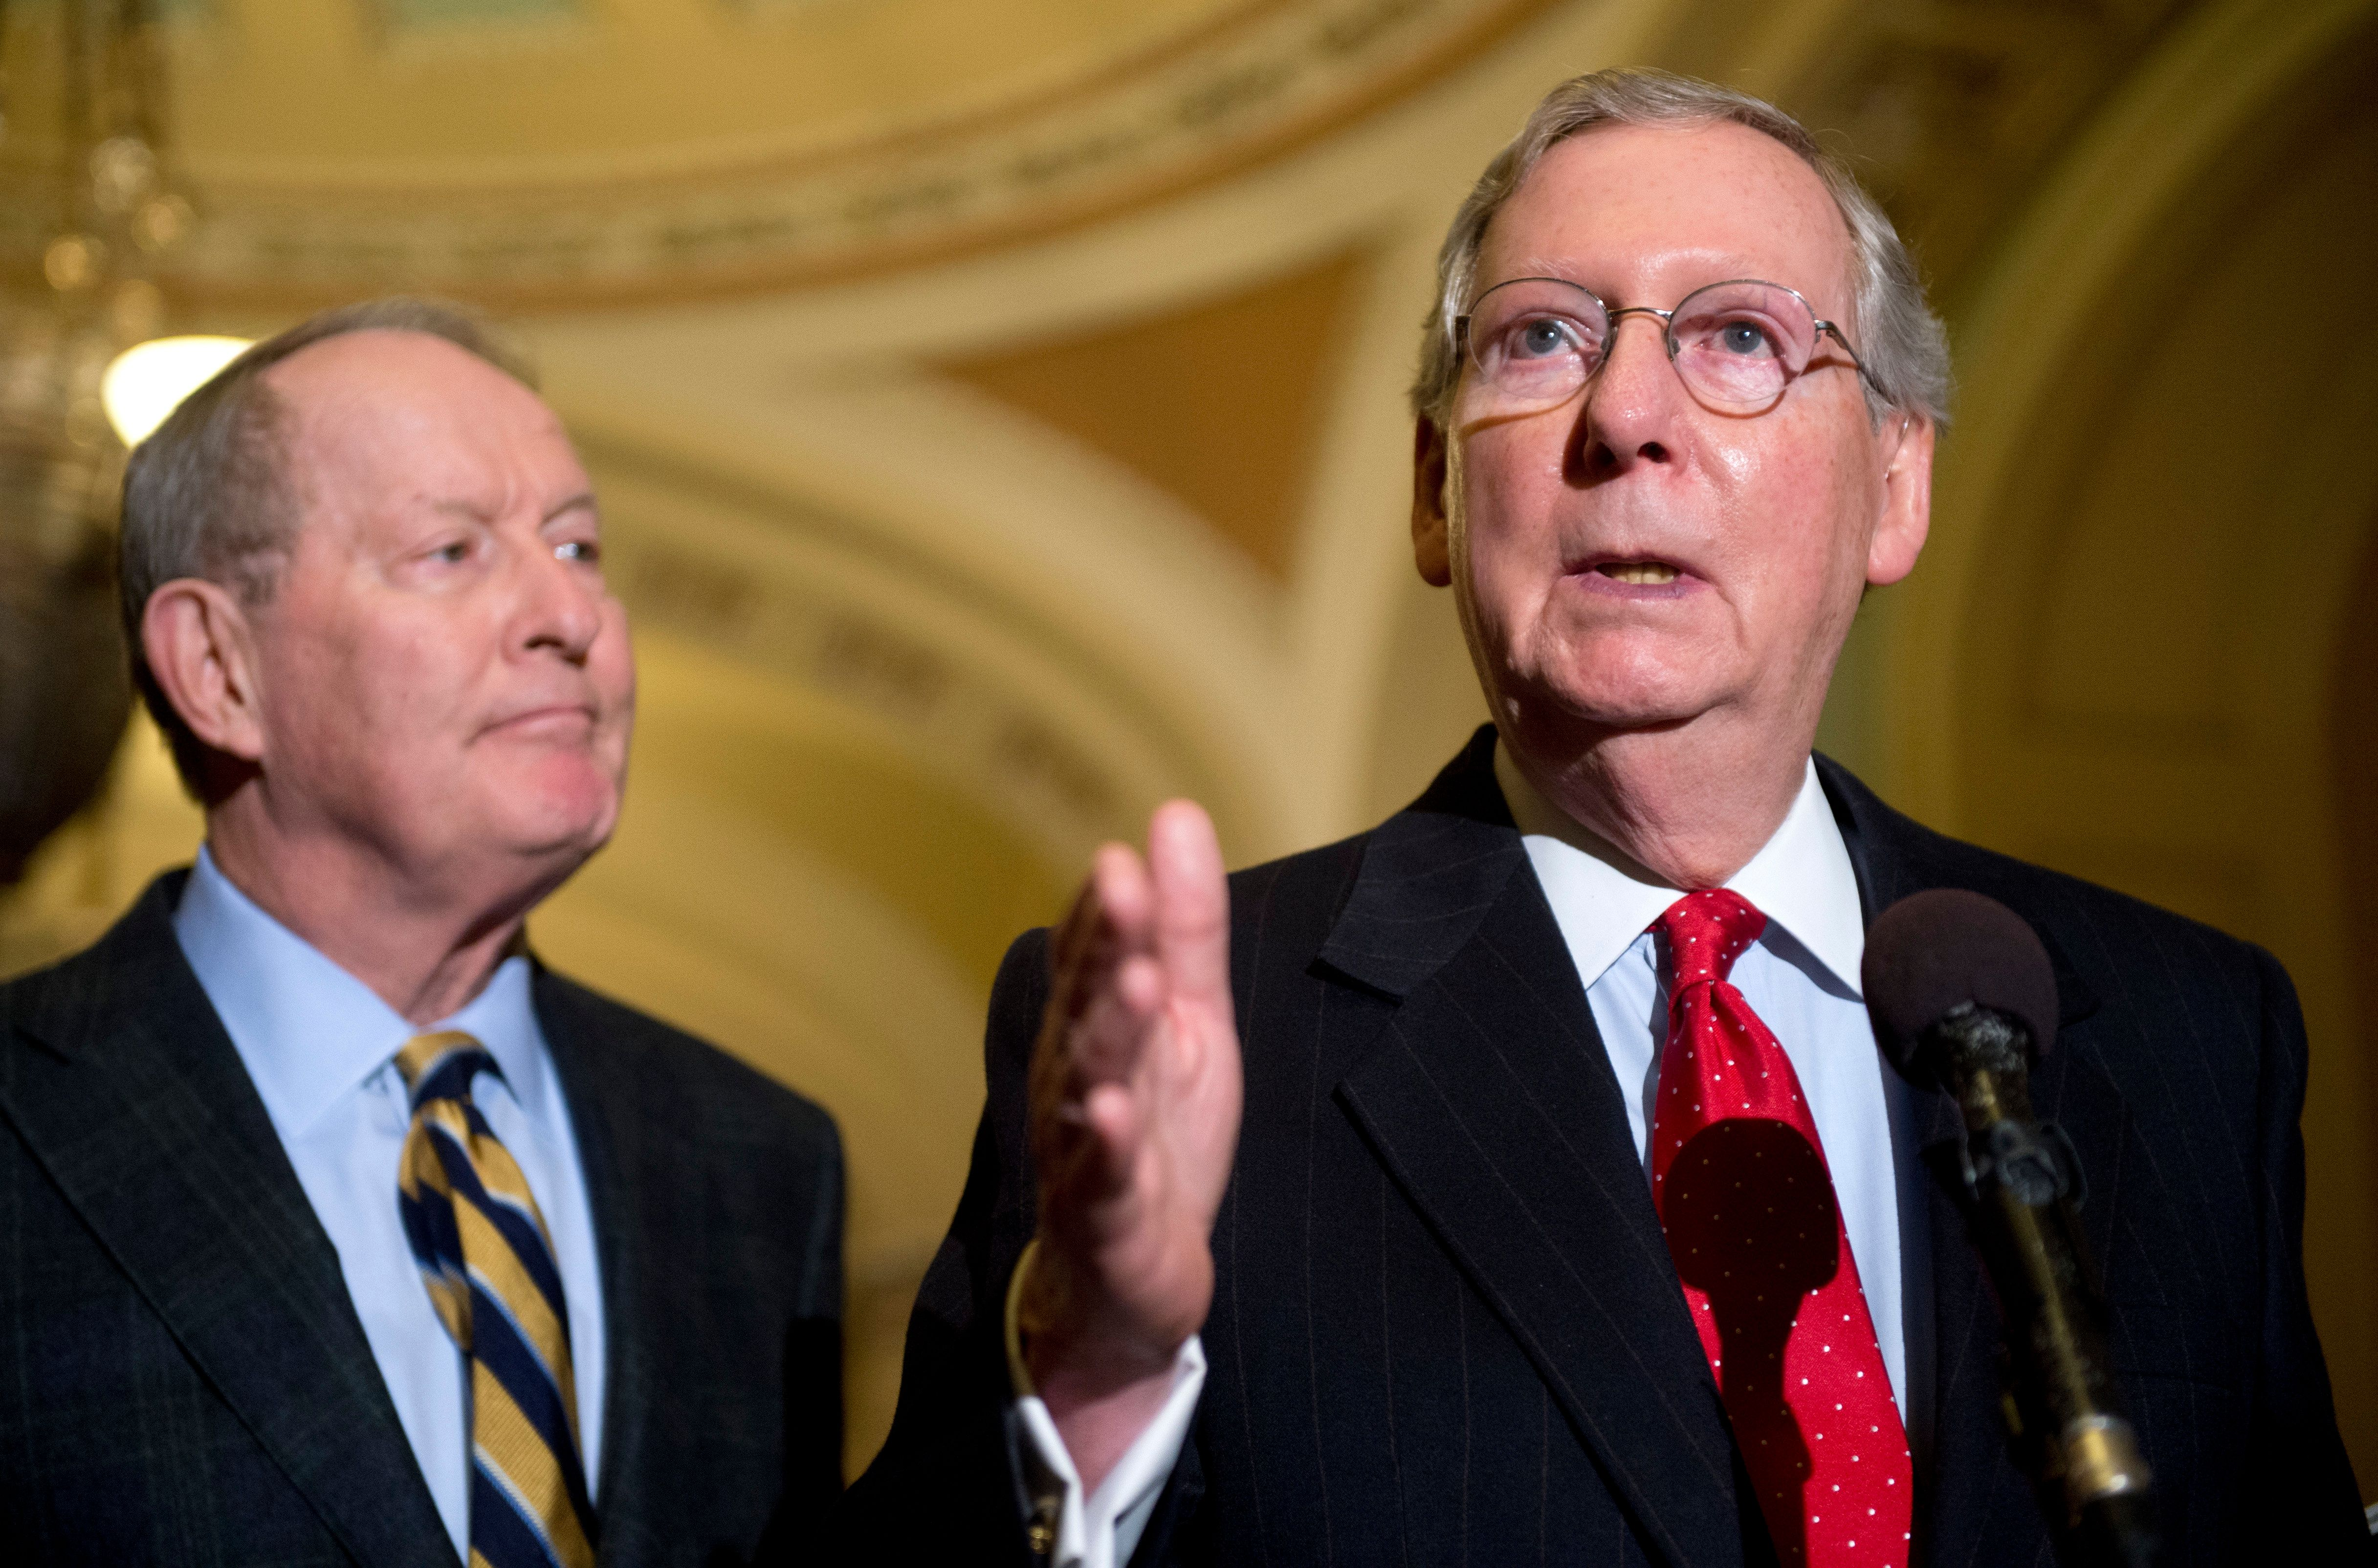 UNITED STATES - NOVEMBER 21: Senate Minority Leader Mitch McConnell, R-Ky., right, and Sen. Lamar Alexander, R-Tenn., conduct a news conference in the Capitol after a vote in the Senate to end the minoritys ability to filibuster and kill most presidential nominations. (Photo By Tom Williams/CQ Roll Call)